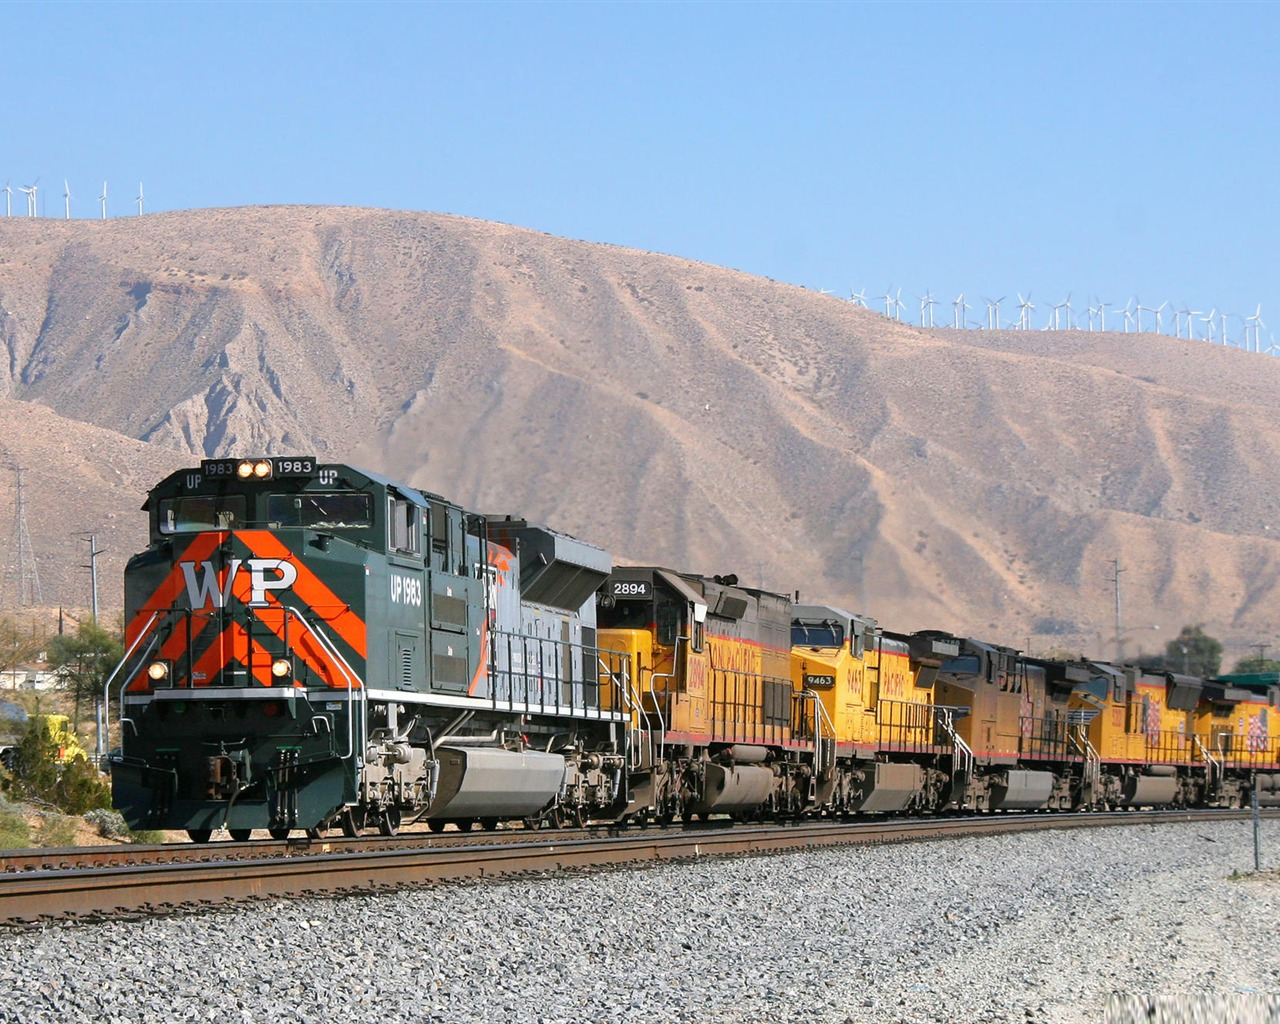 union pacific heritage locomotive 1983-Trains and Railway Series wallpaper Preview   10wallpaper.com